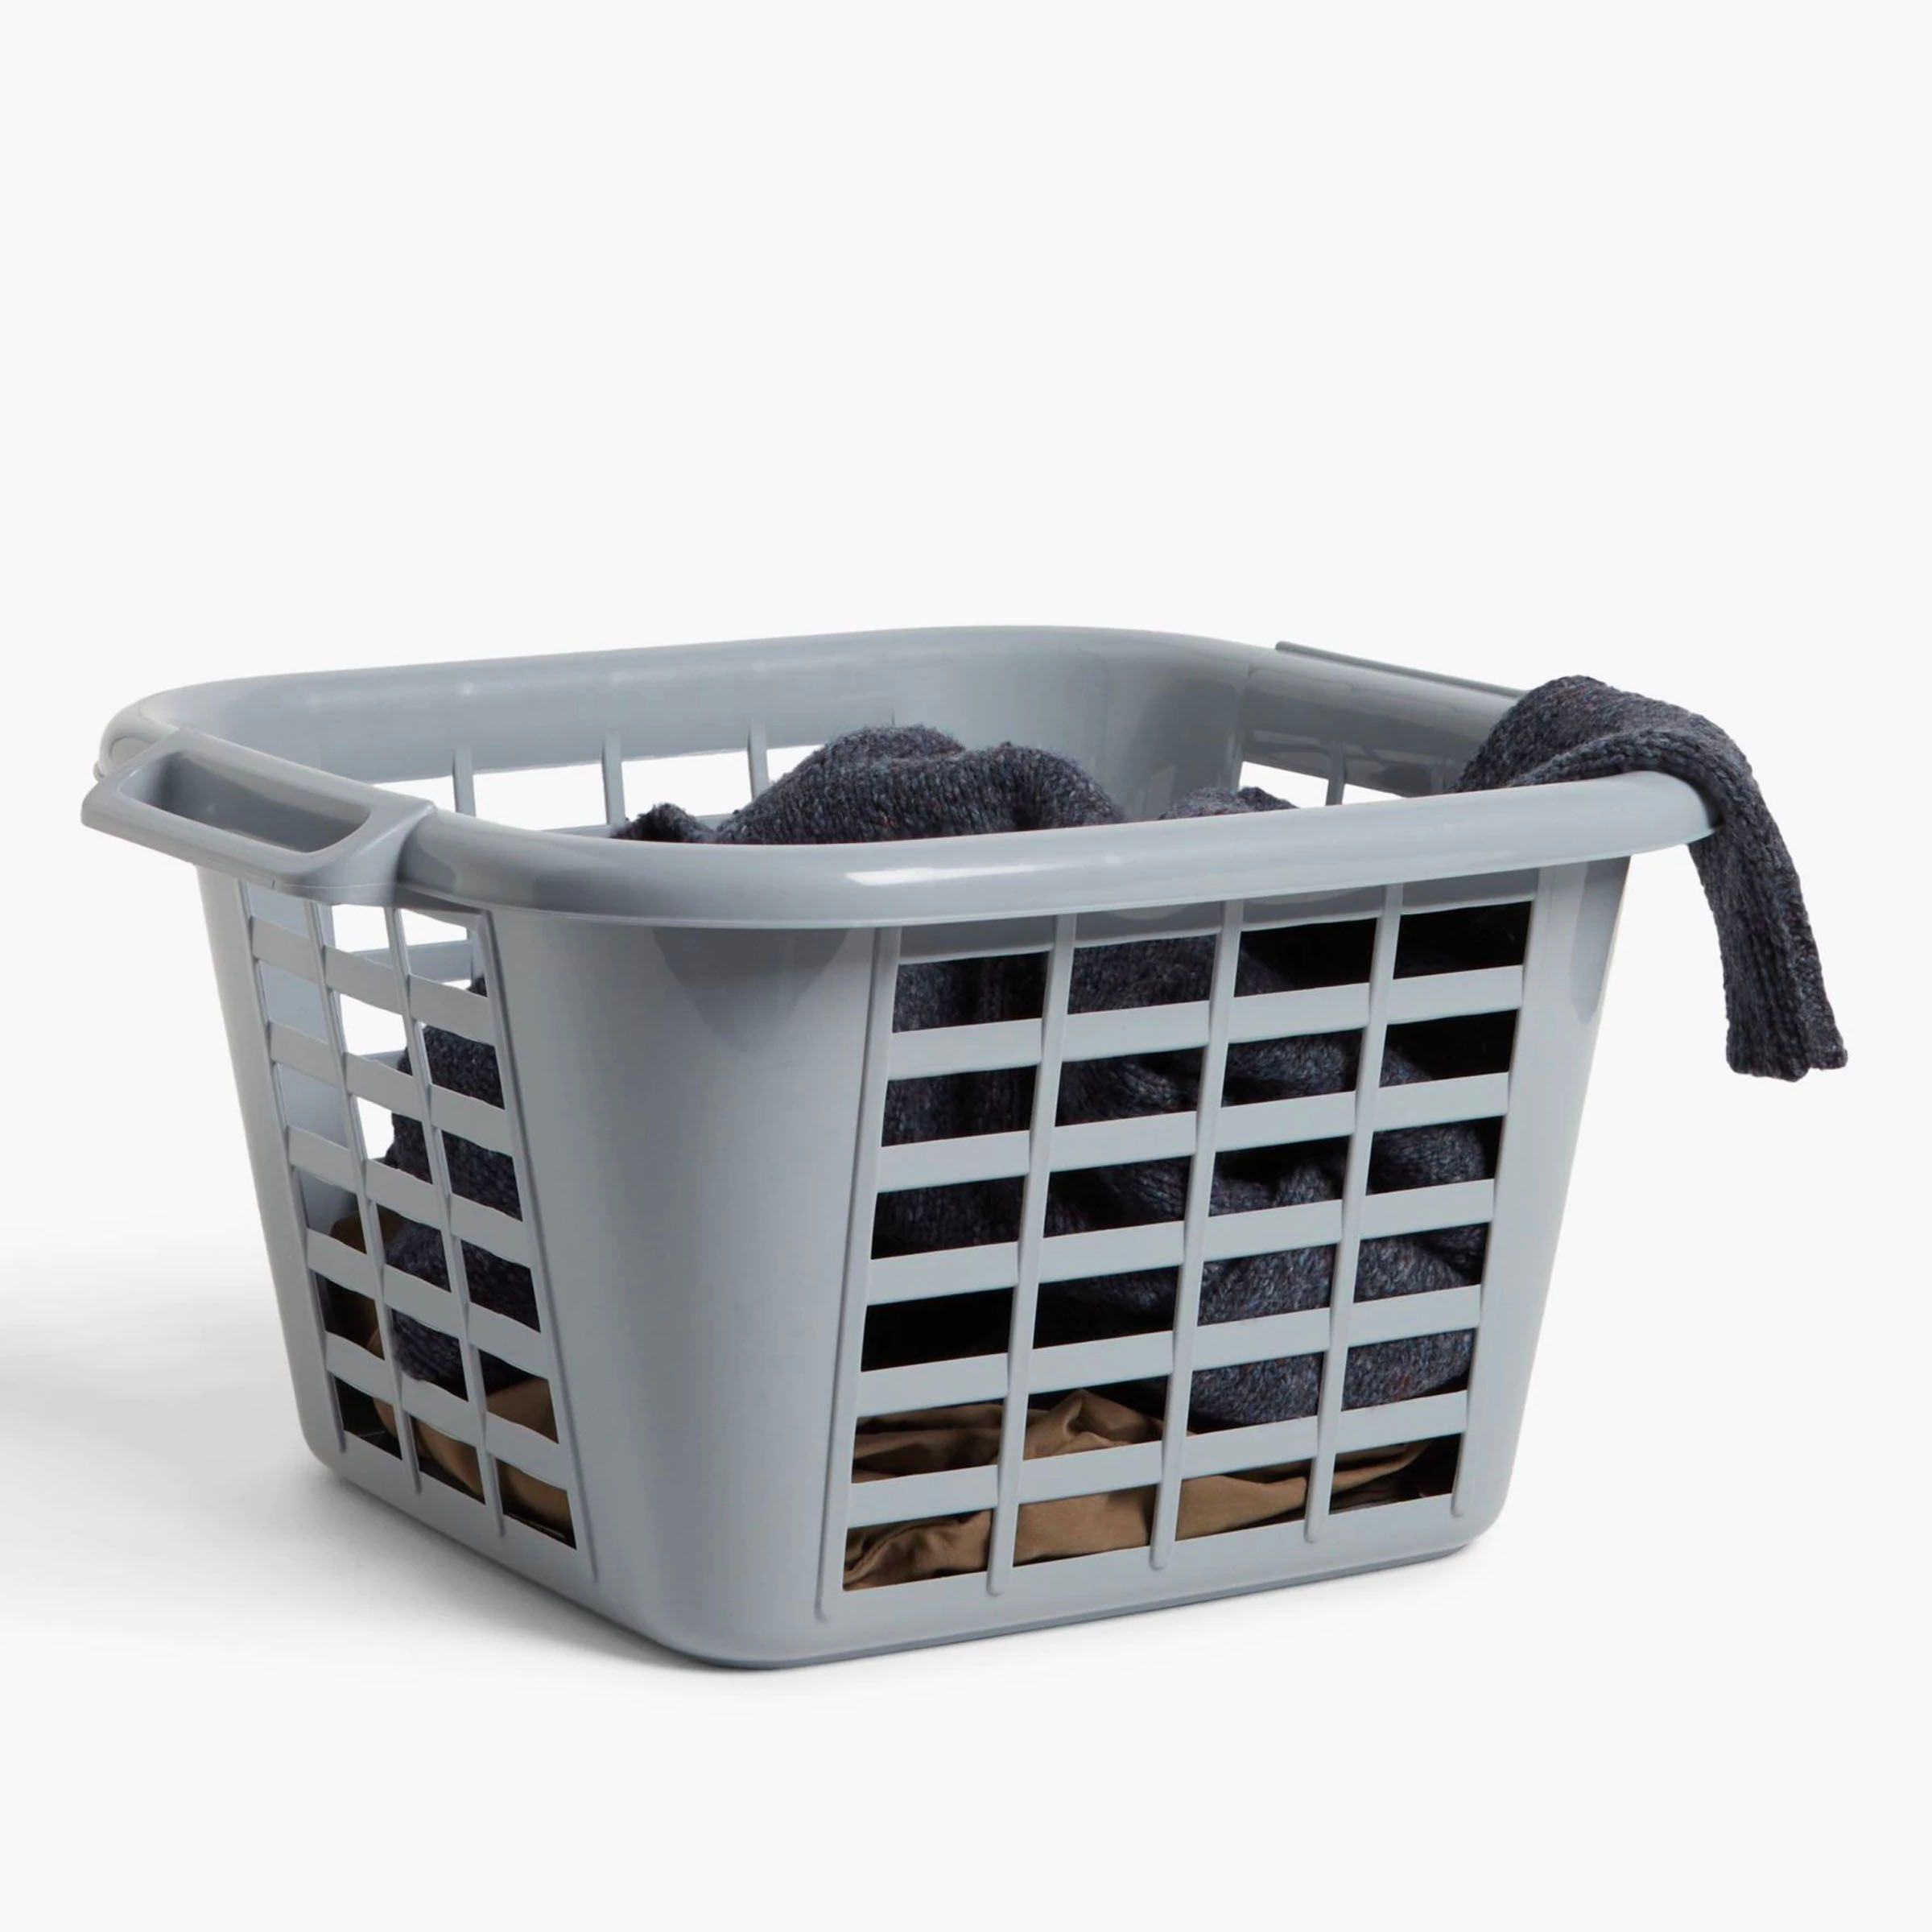 Laundry Baskets, Bins & Bags